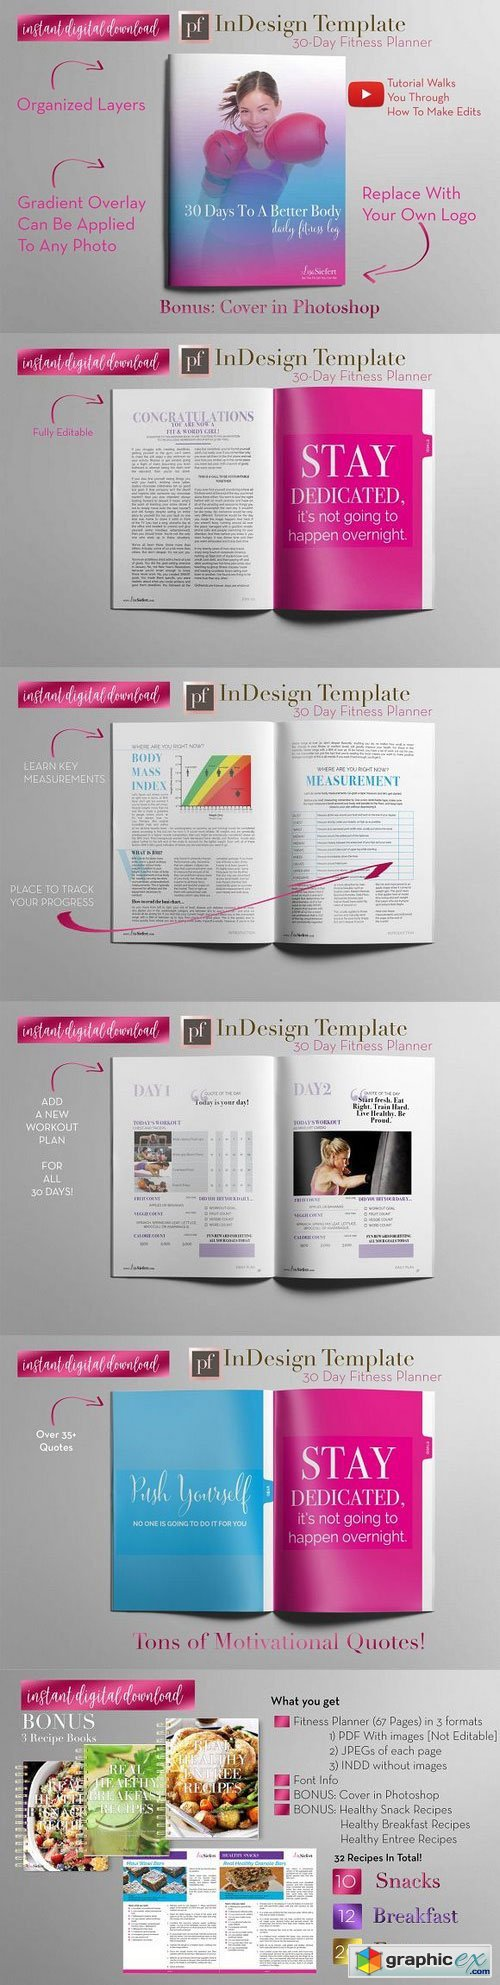 Fitness Planner | InDesign Template